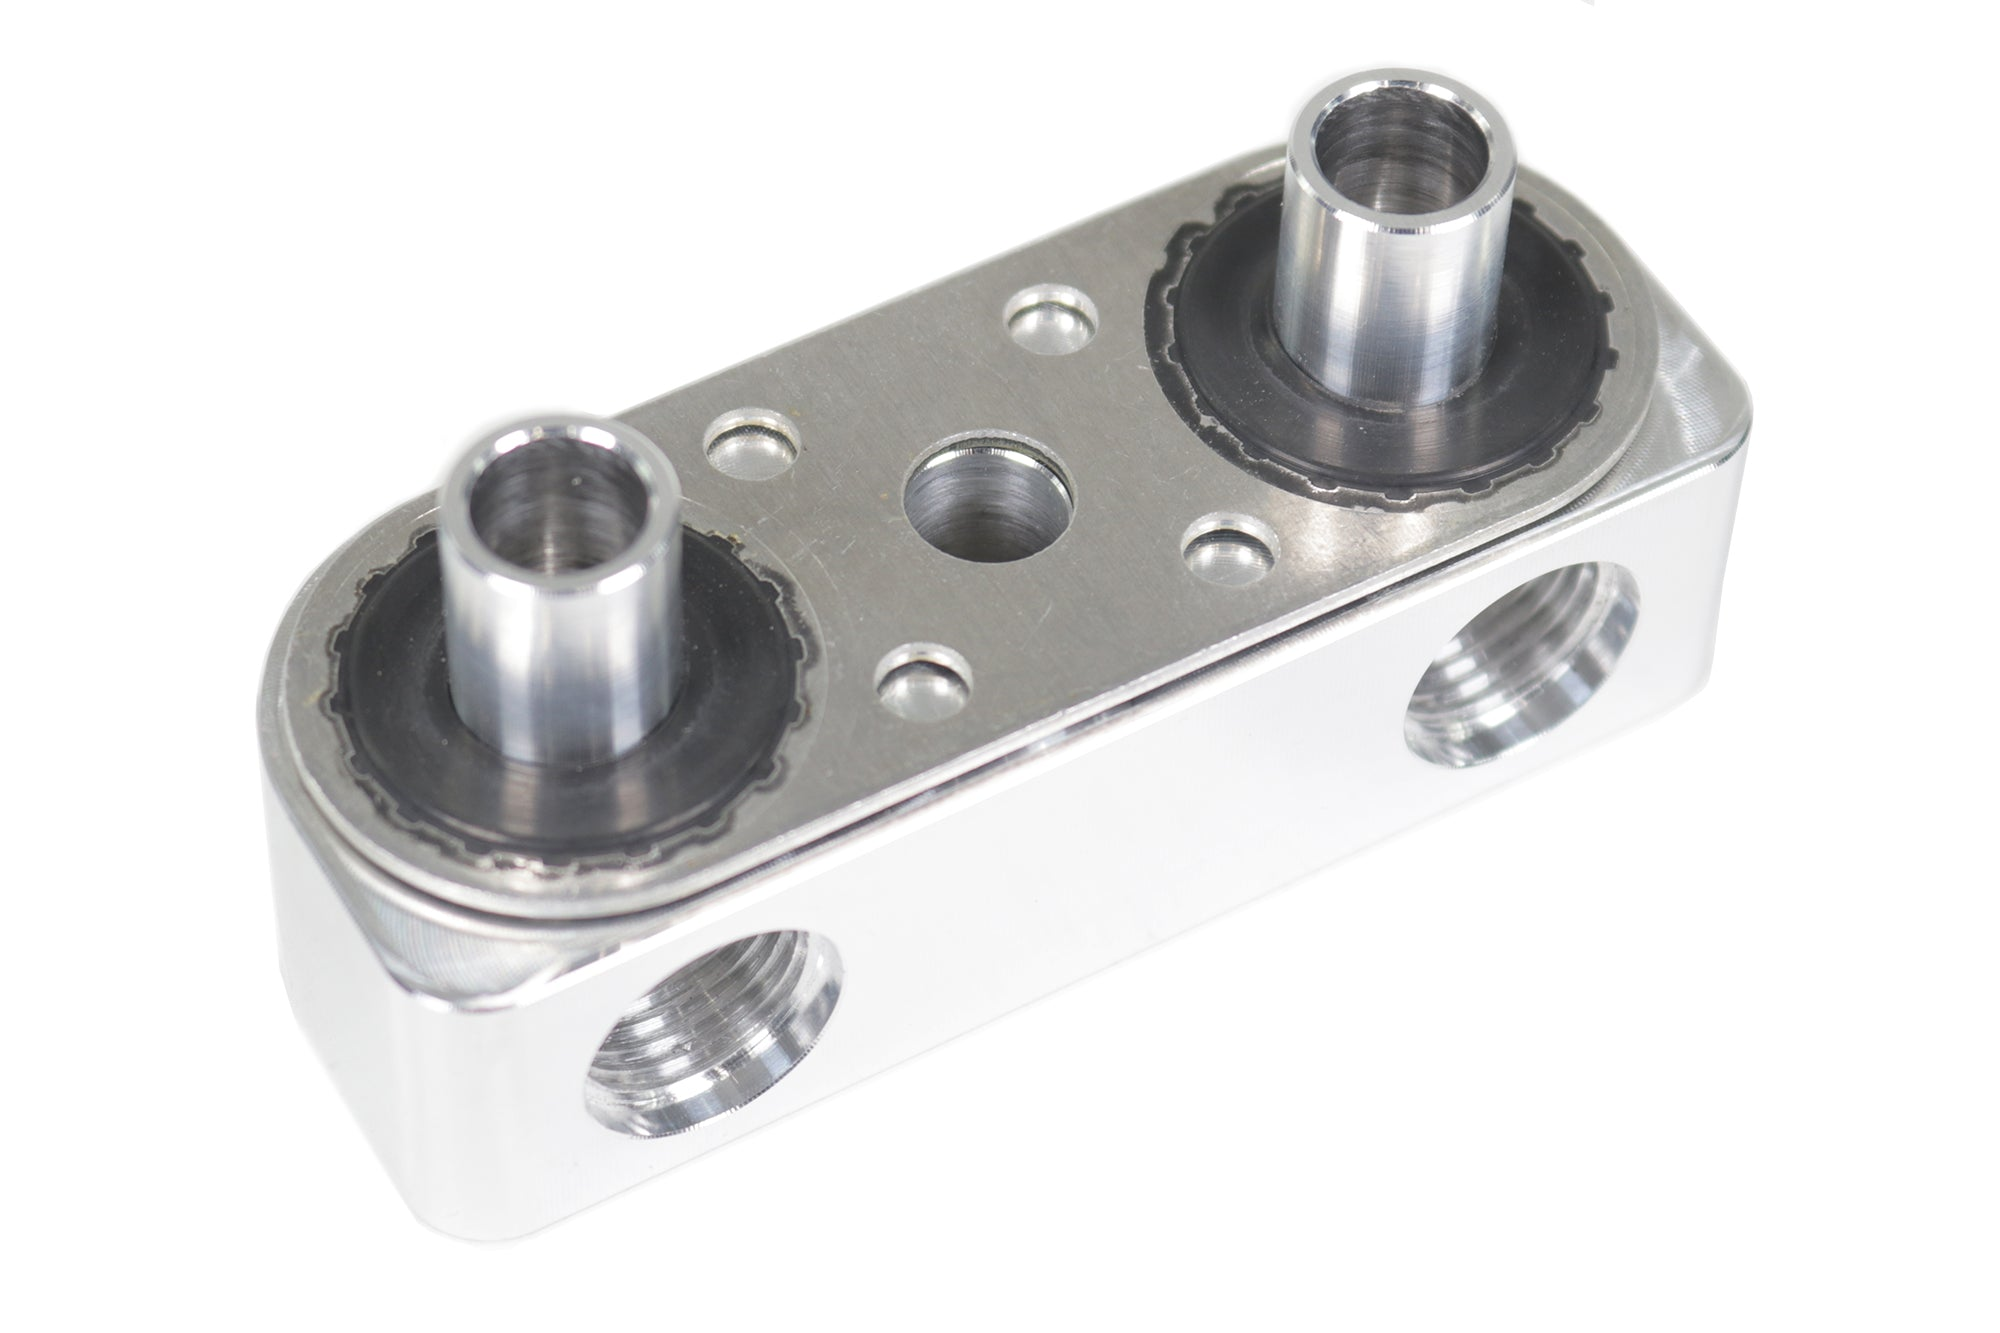 6L80E/8L90E Billet Transmission Low Profile Side Exit (With Gaskets and Fittings)-Motion Raceworks-Motion Raceworks